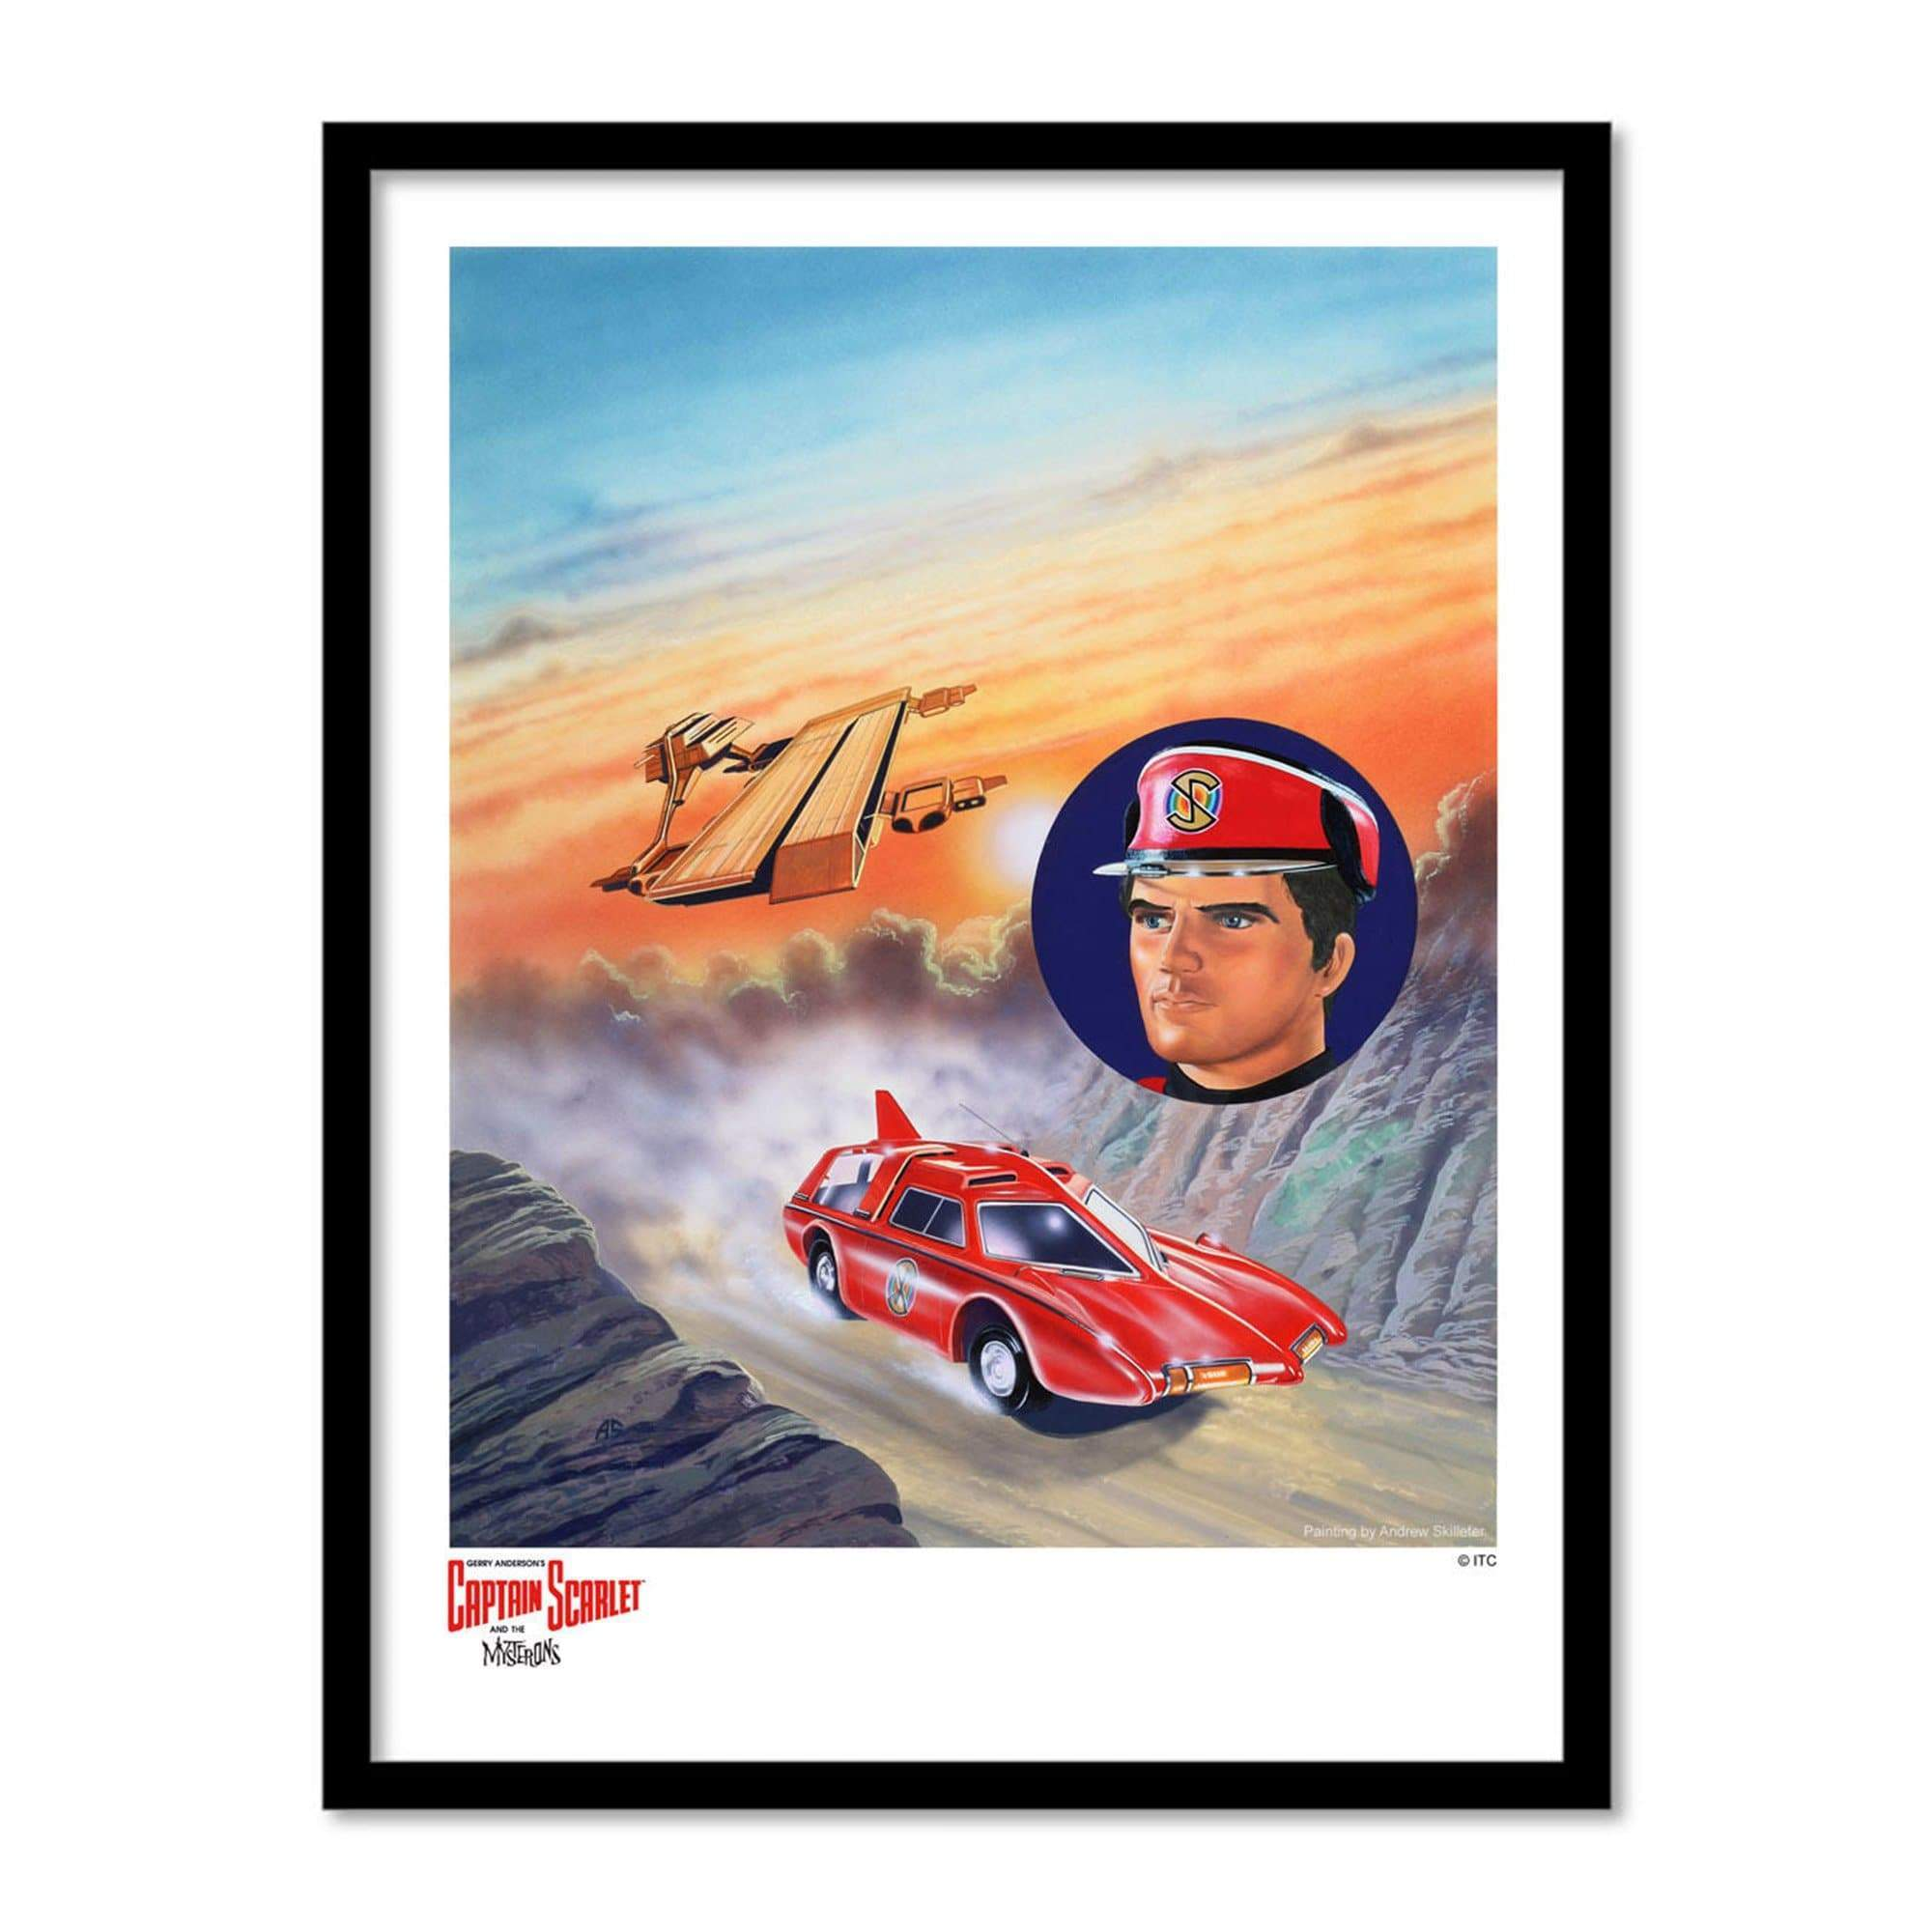 Captain Scarlet 'Indestructible' Artist Signed Print (Official & Exclusive] - The Gerry Anderson Store